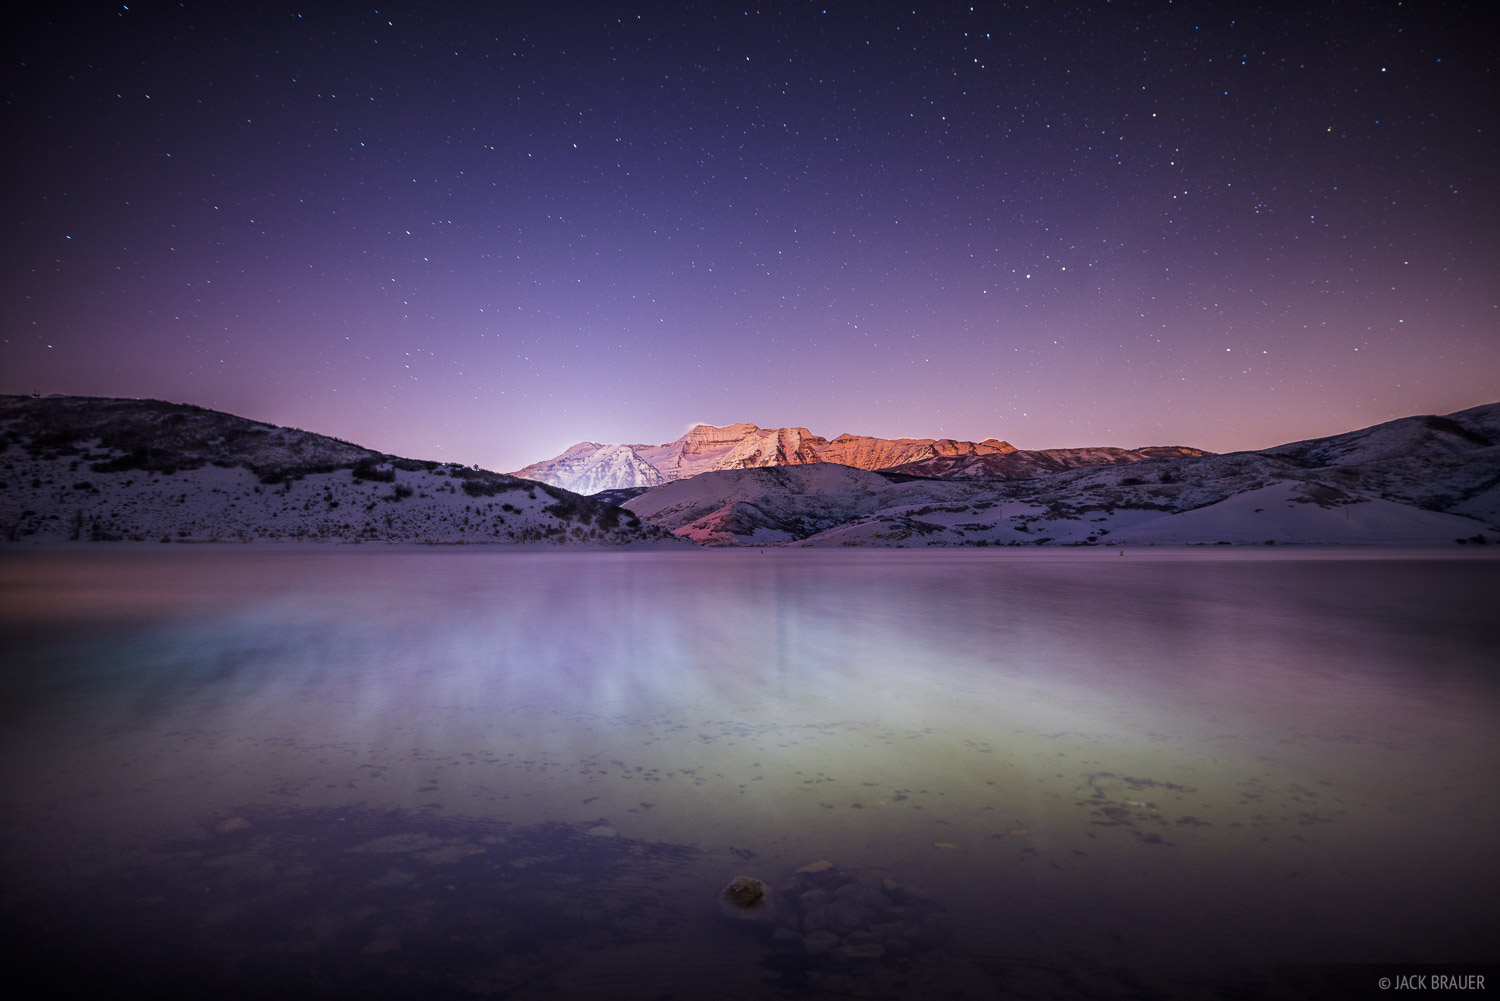 Timpanogos,Utah,Wasatch Range, moonlight, Deer Creek Reservoir, night, December, photo